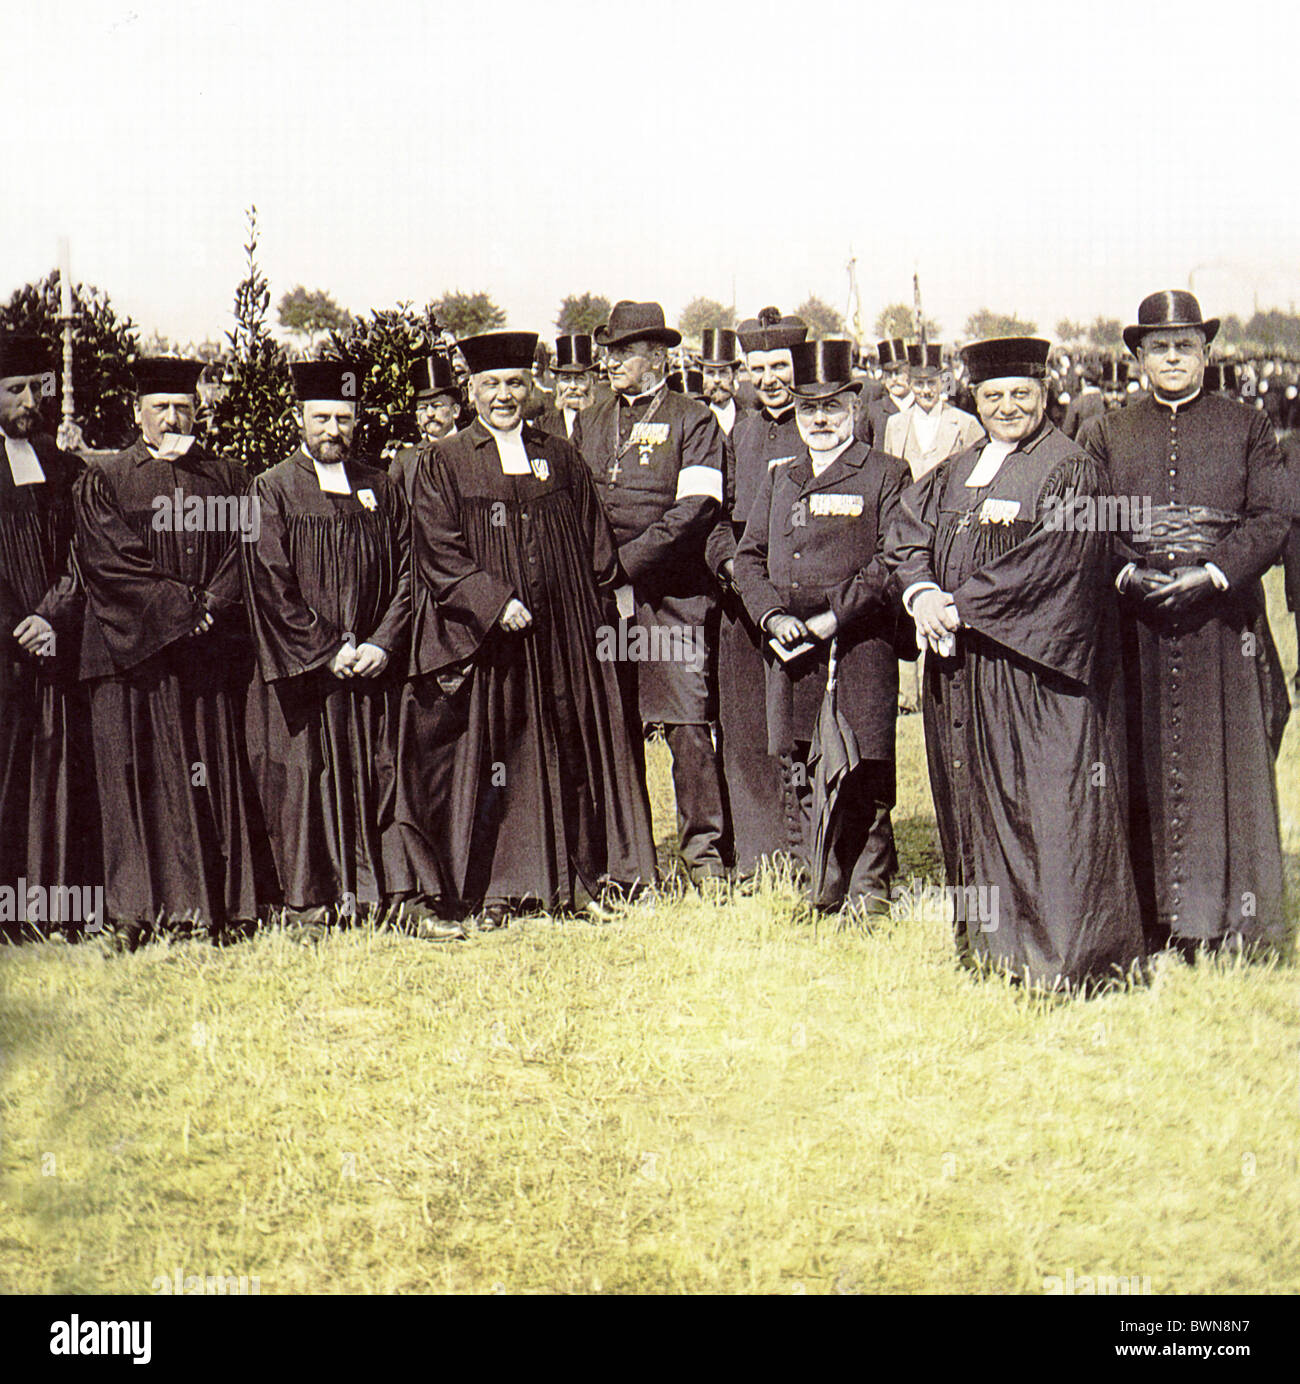 1896 Berlin army preachers group civil servants Tempelhofer Feld history historical historic preacher relig - Stock Image